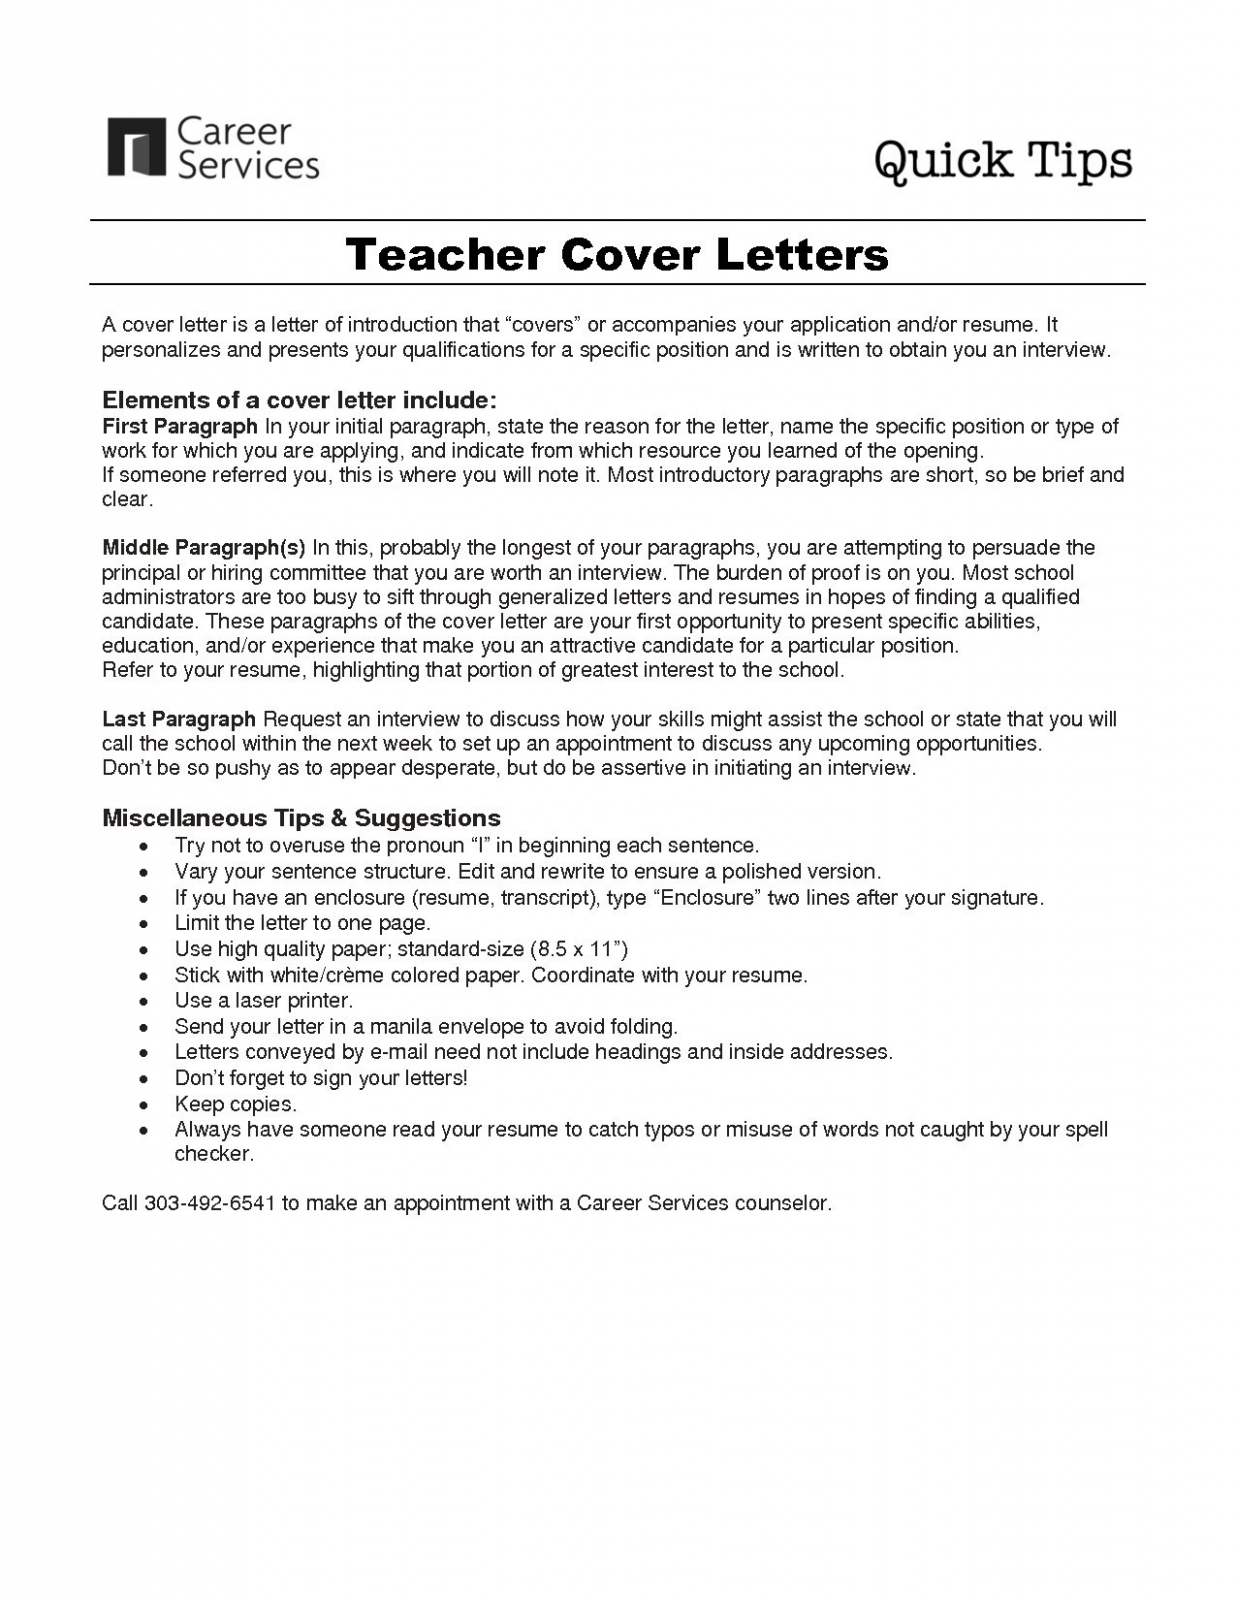 Genetic Counseling Letter Template Examples | Letter ...